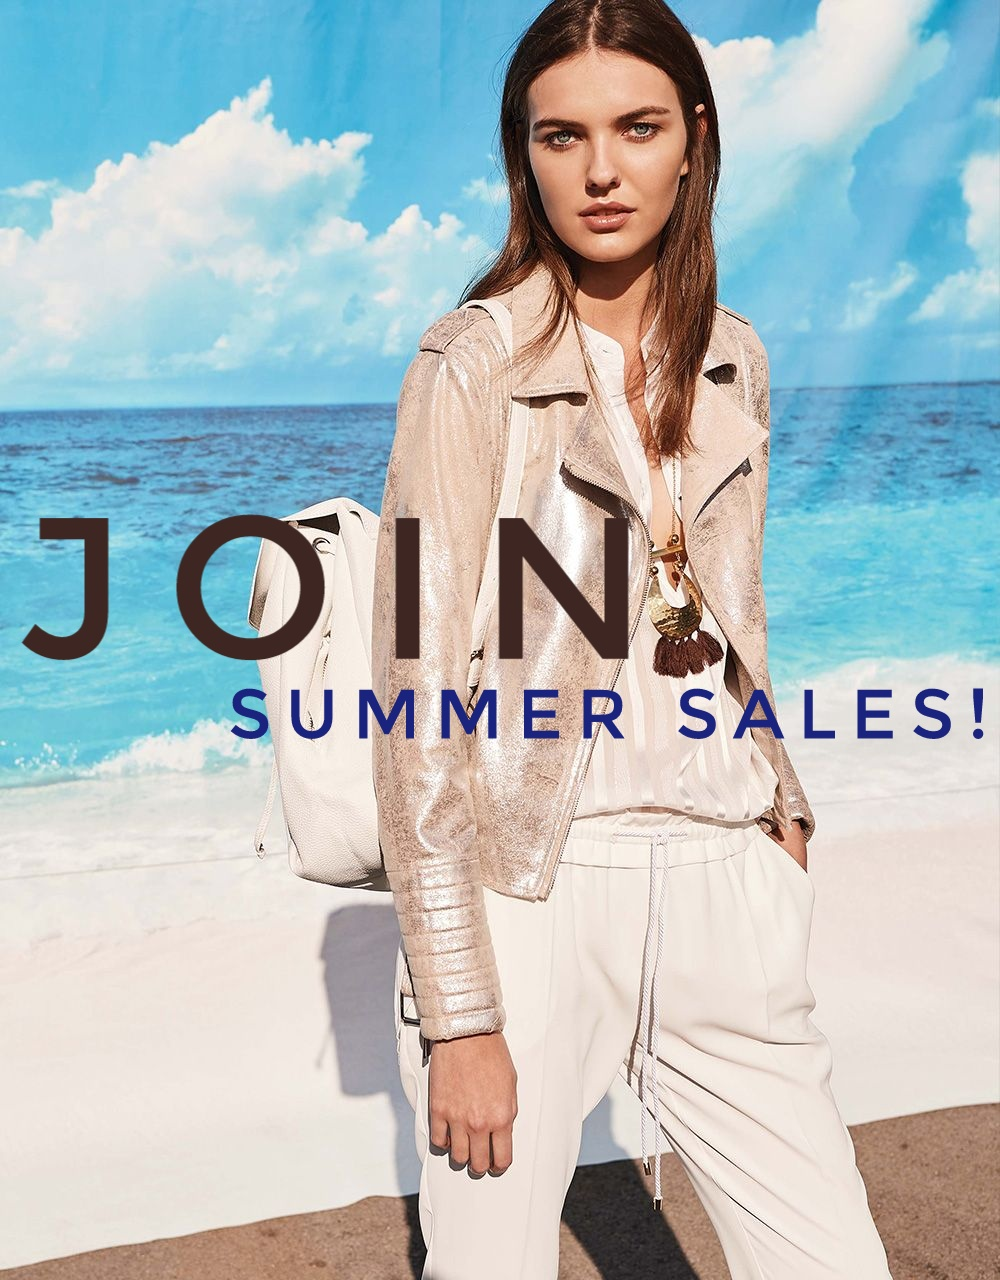 The 10 basic clothes you have to look for in SummerSales